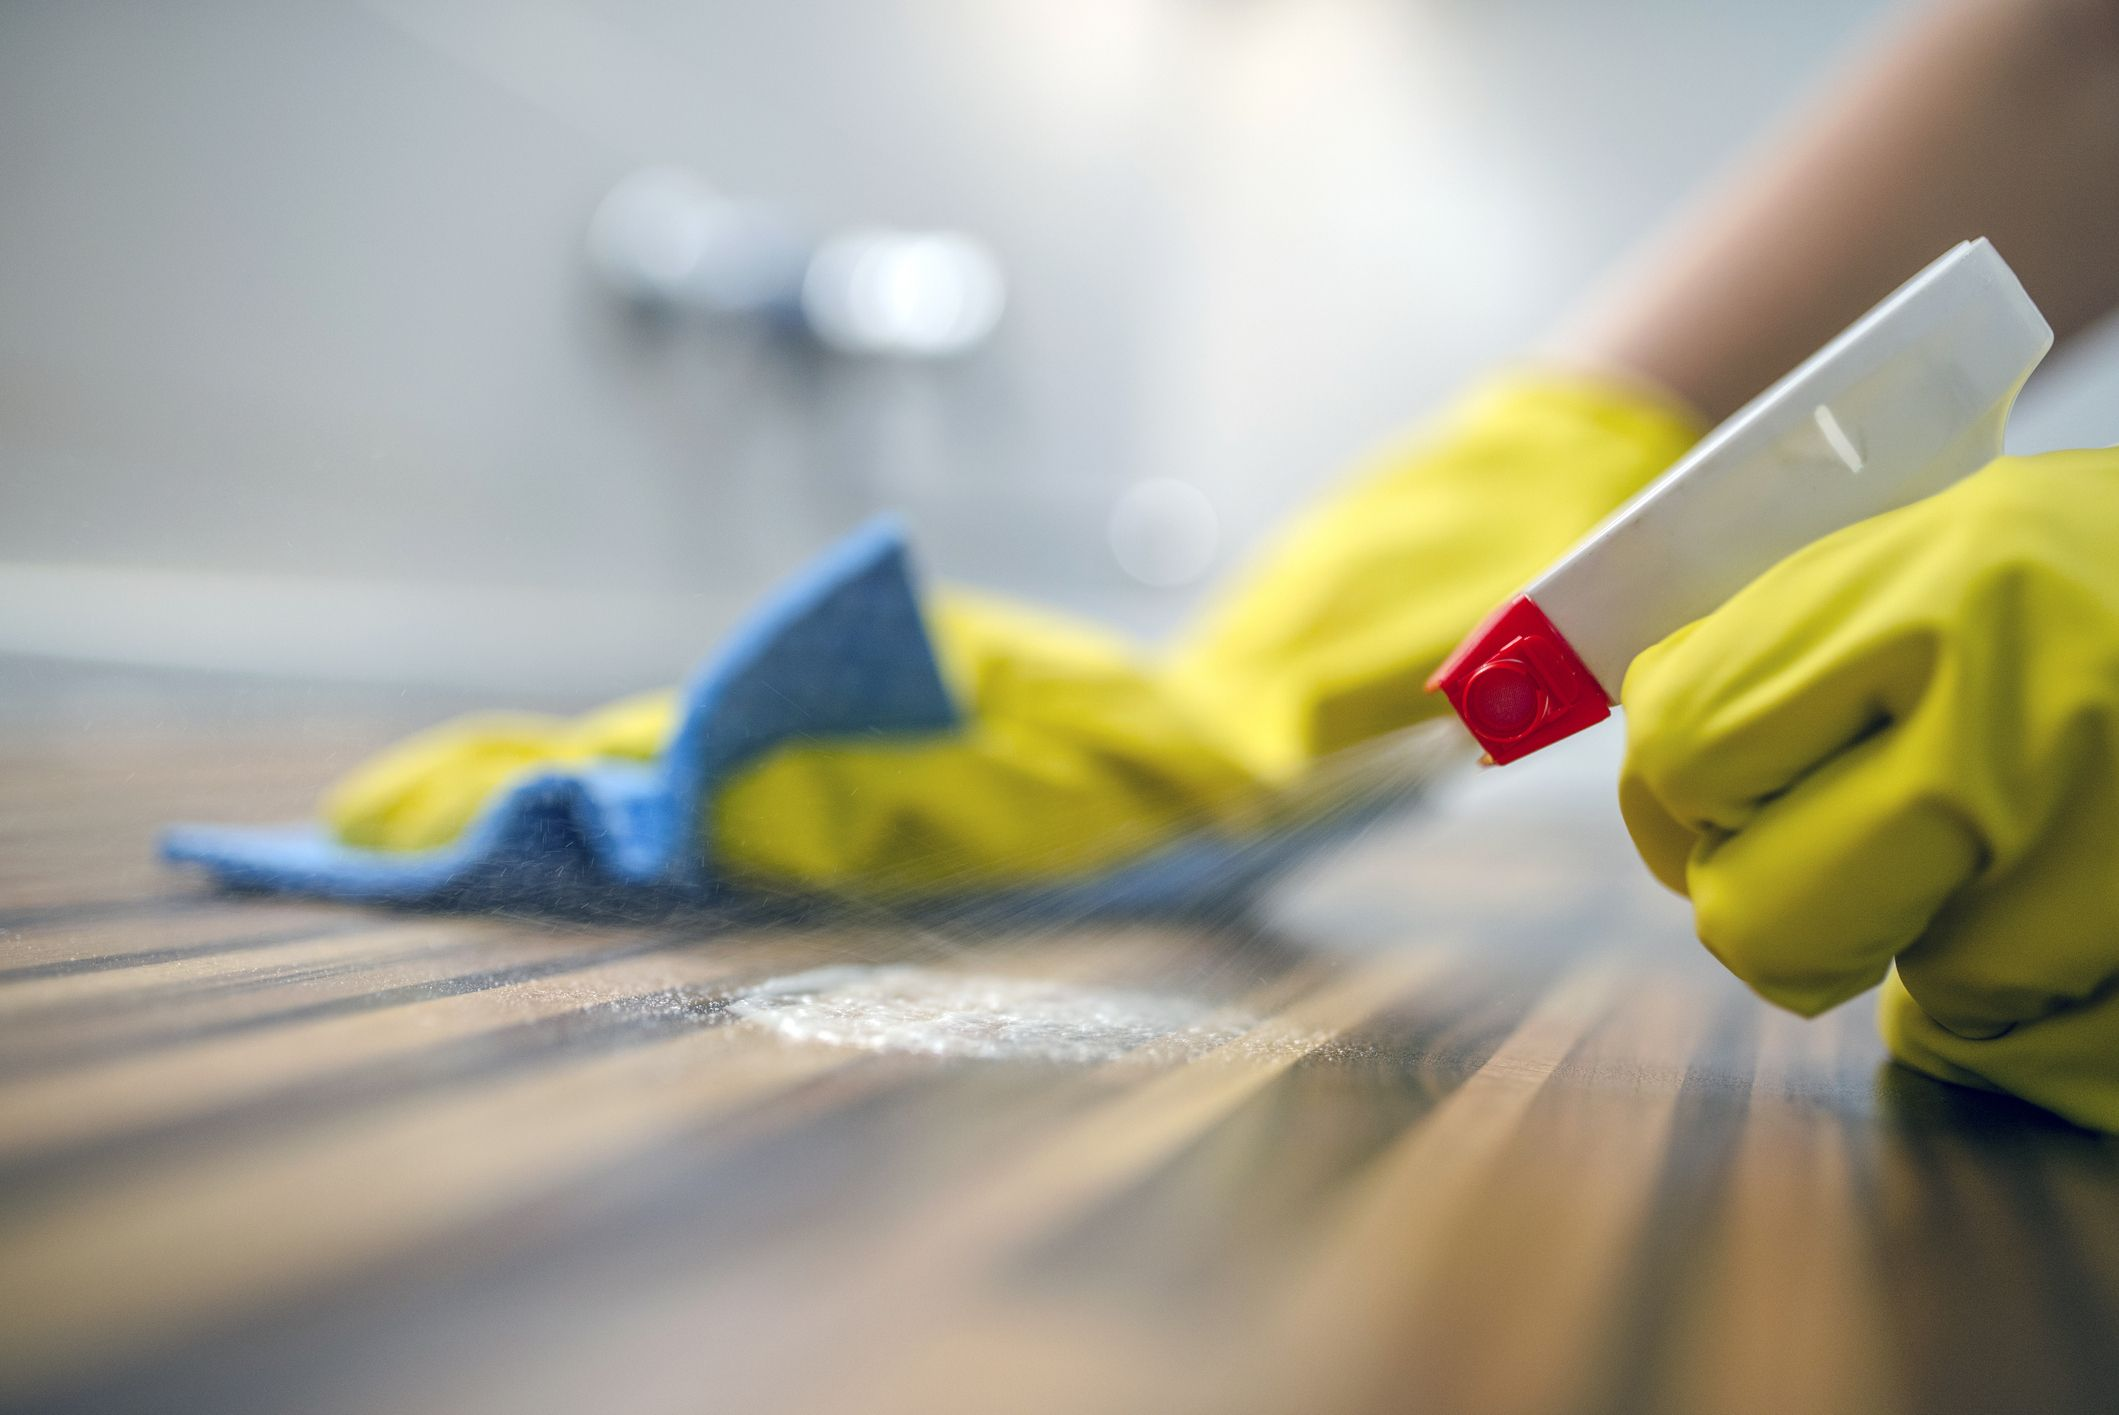 The 10 filthiest areas in your home have been uncovered in a new study